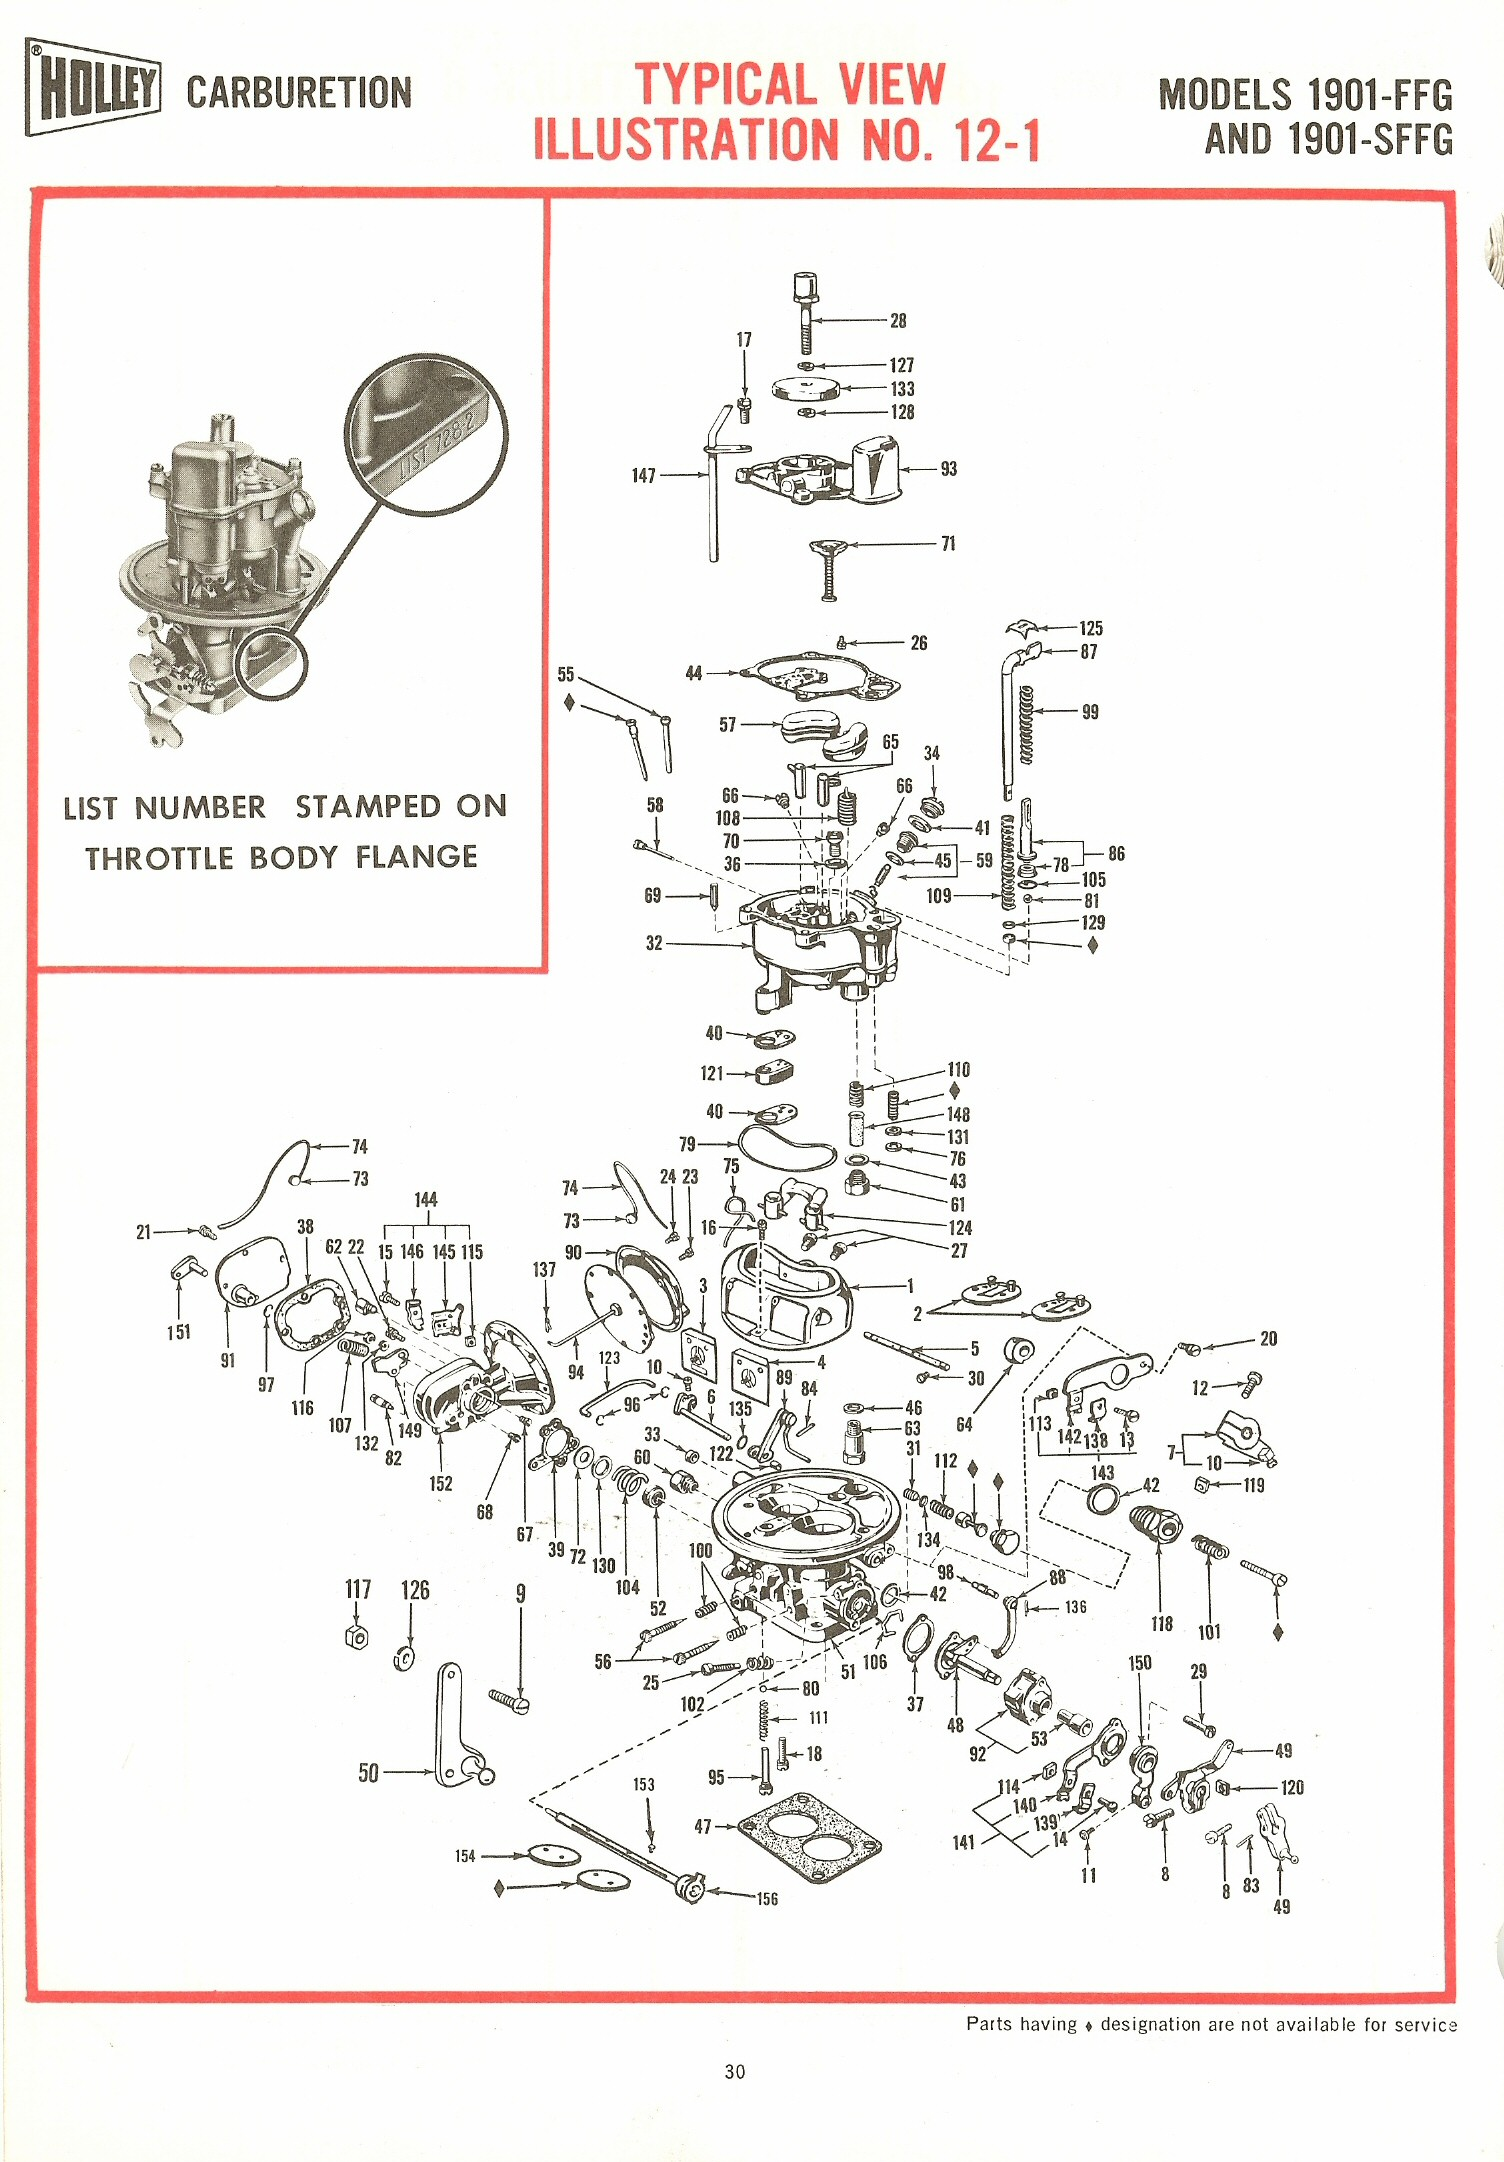 Holley 1901ffg And 1901sffg Exploded Diagrams